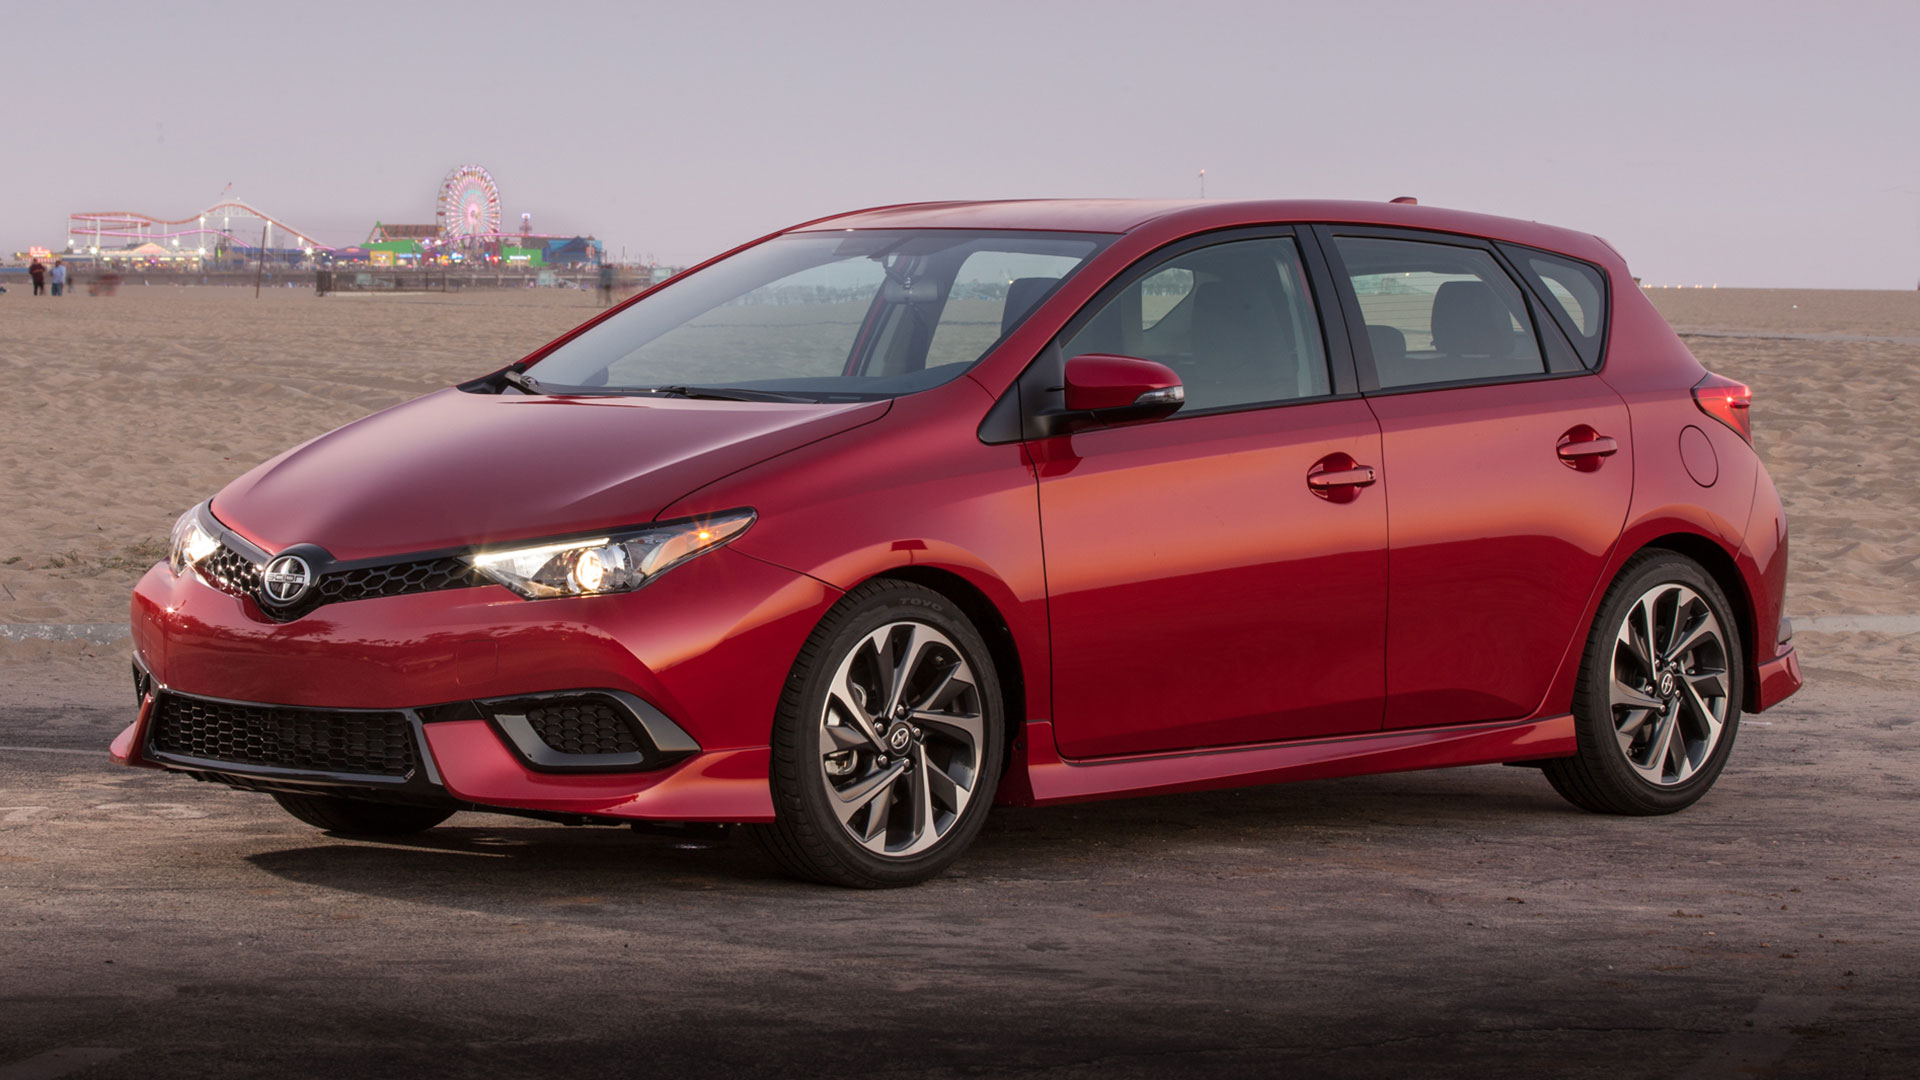 2016 Scion iM 4-door hatchback